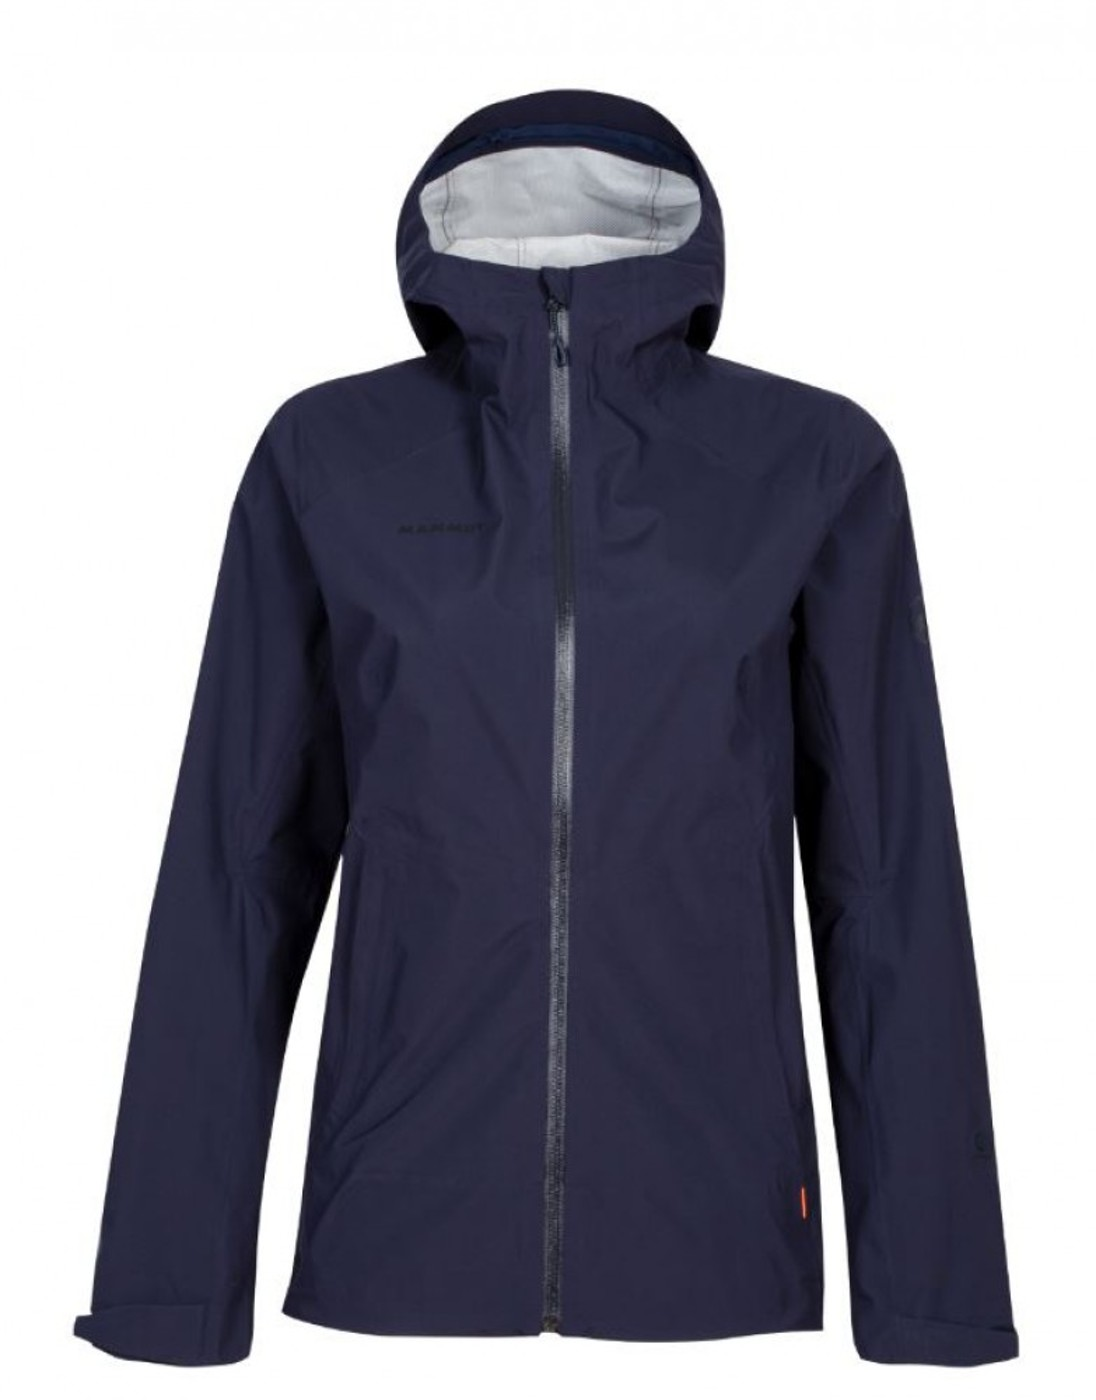 MAMMUT ALBULA IN HOODED JACKED - Damen